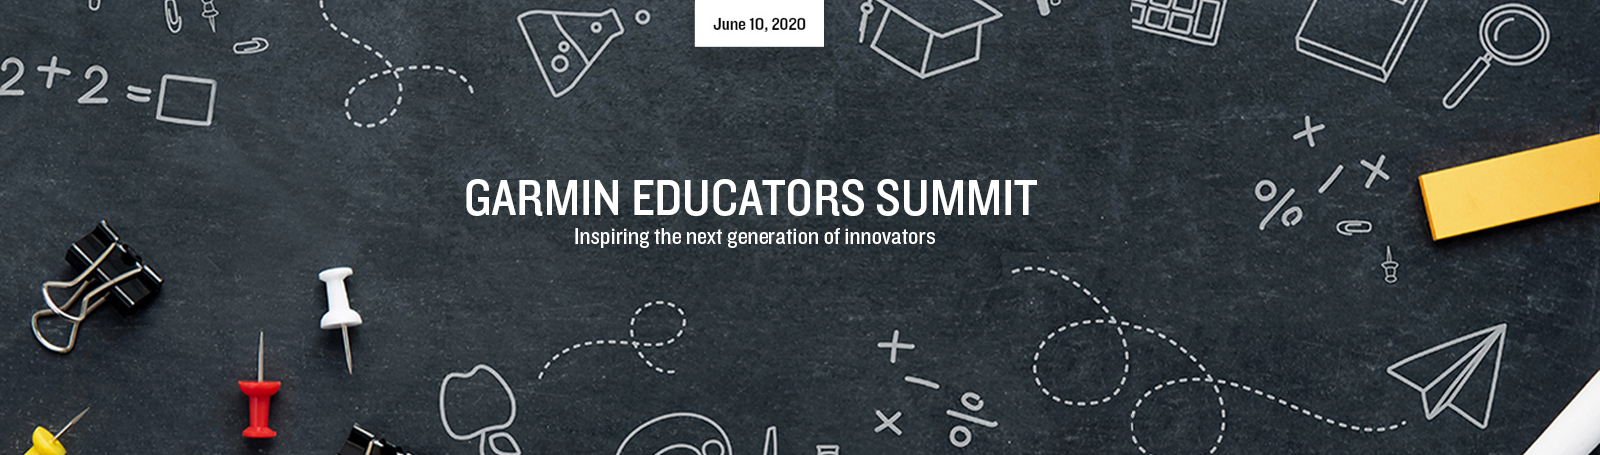 Garmin Educators Summit Banner Graphic